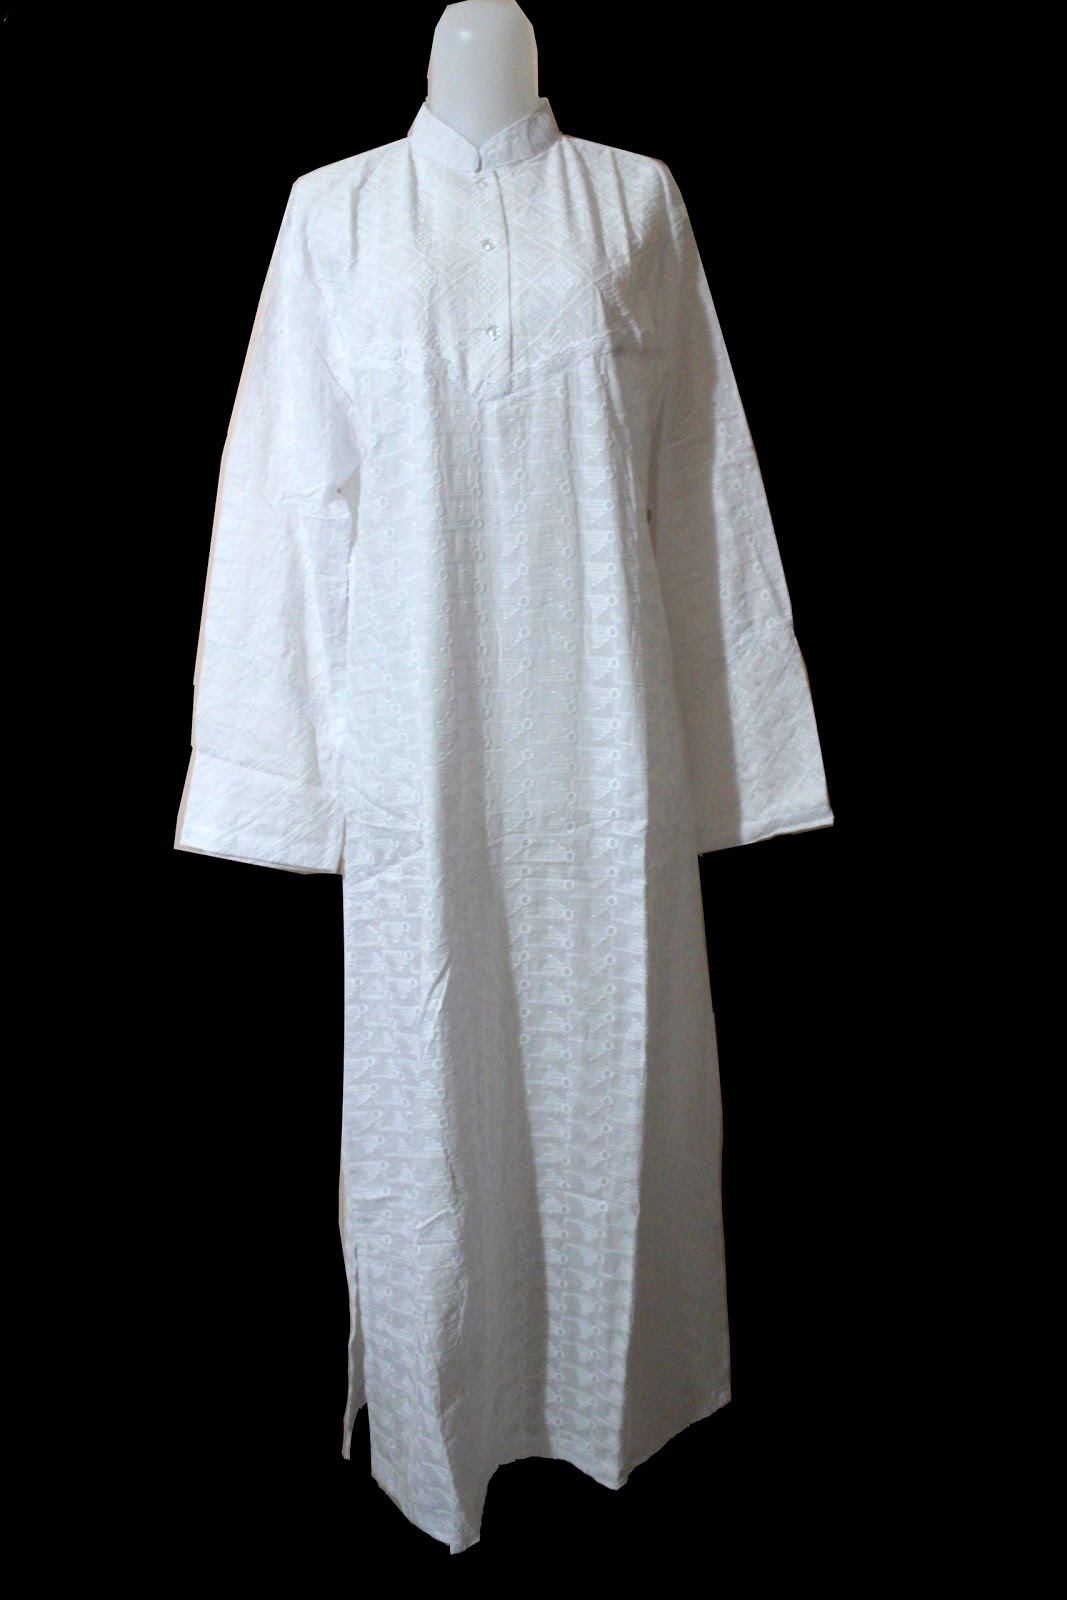 Original Ihram Dress Code